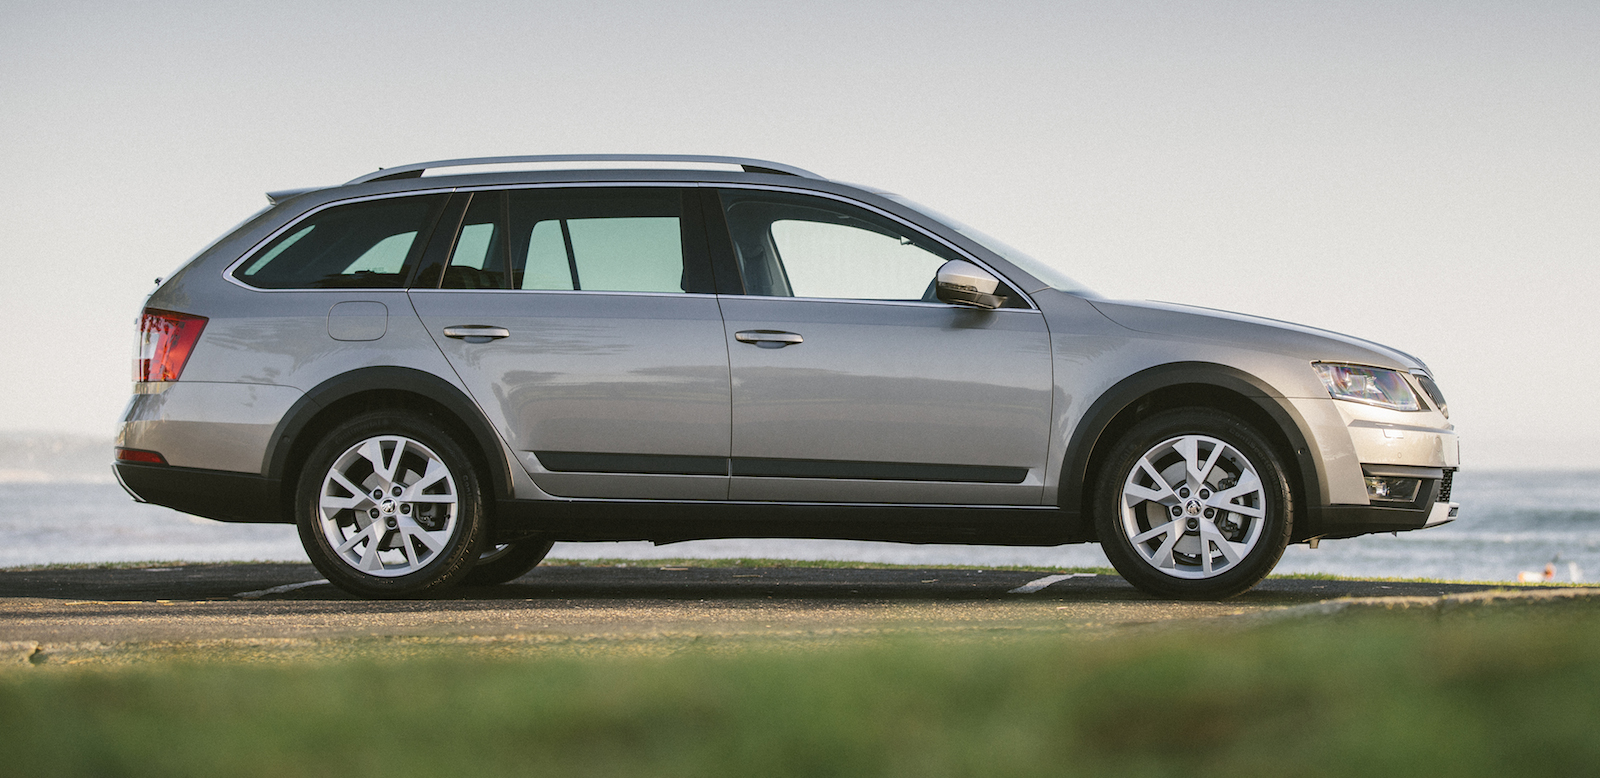 2015 skoda octavia scout 4x4 pricing and specifications photos caradvice. Black Bedroom Furniture Sets. Home Design Ideas